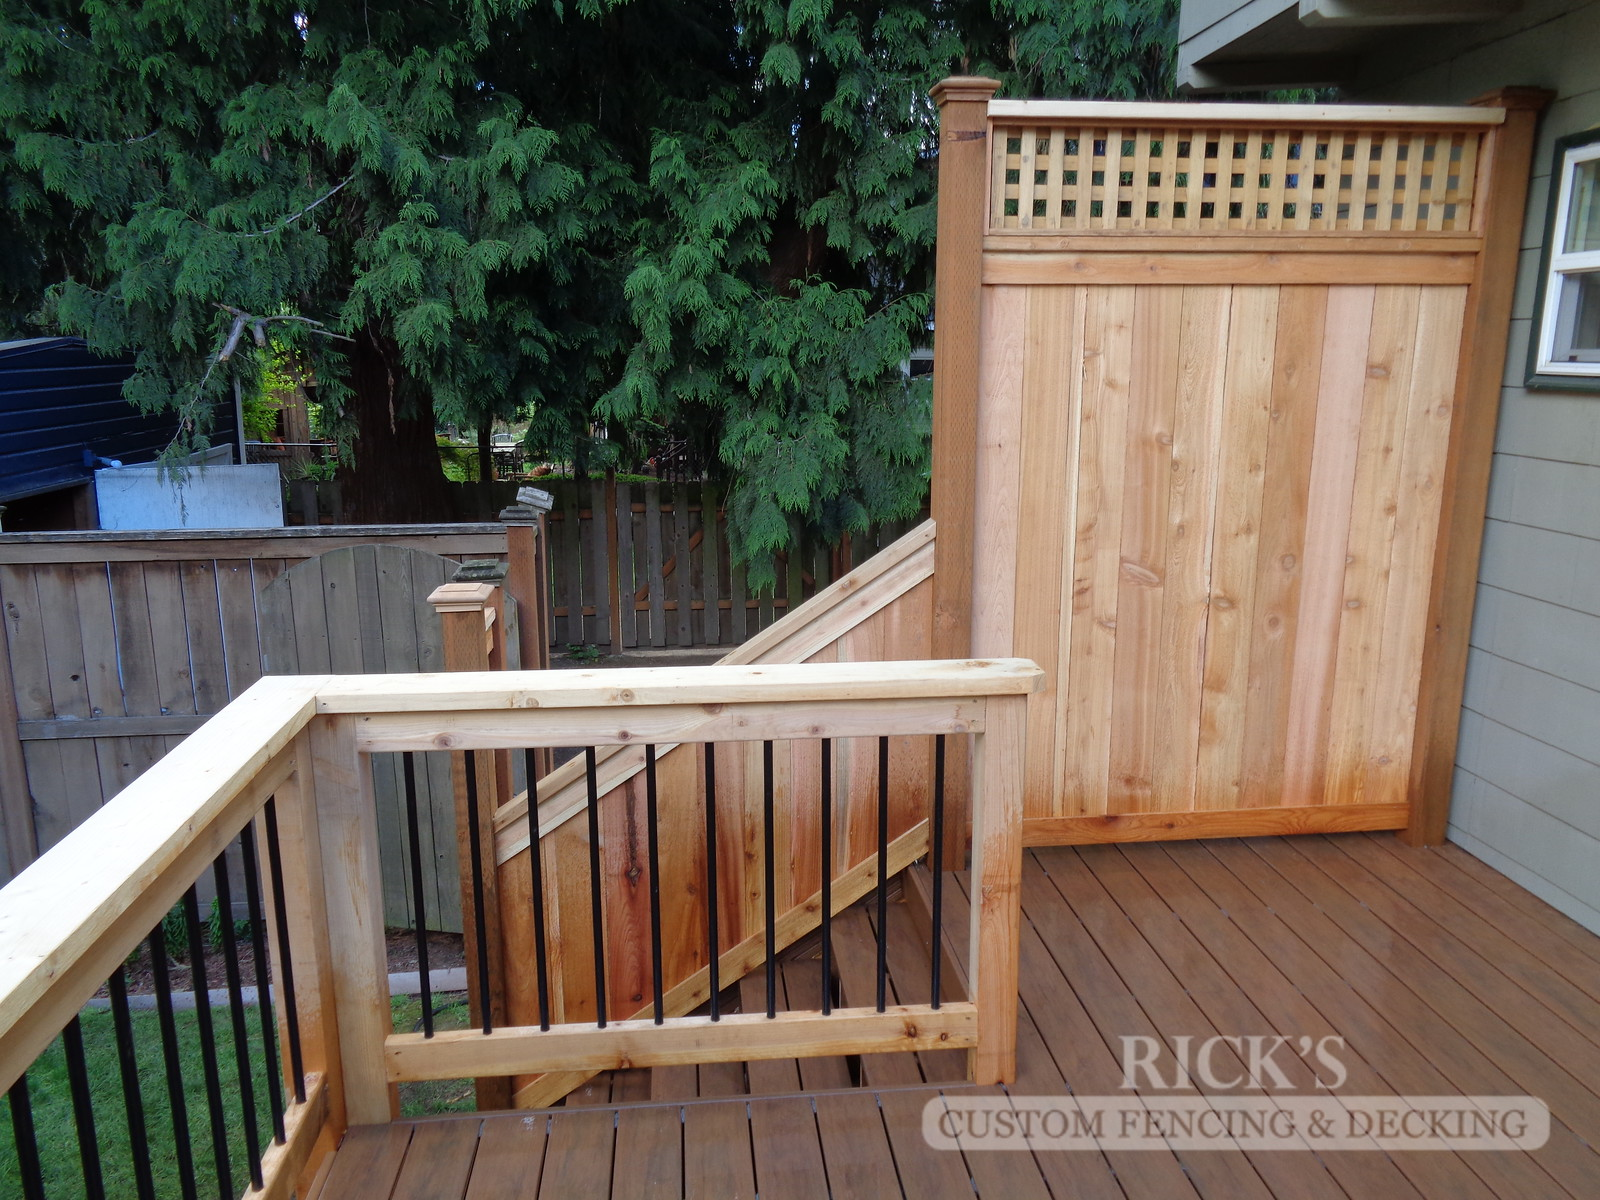 1642 - Cedar Handrail with Aluminum Balusters